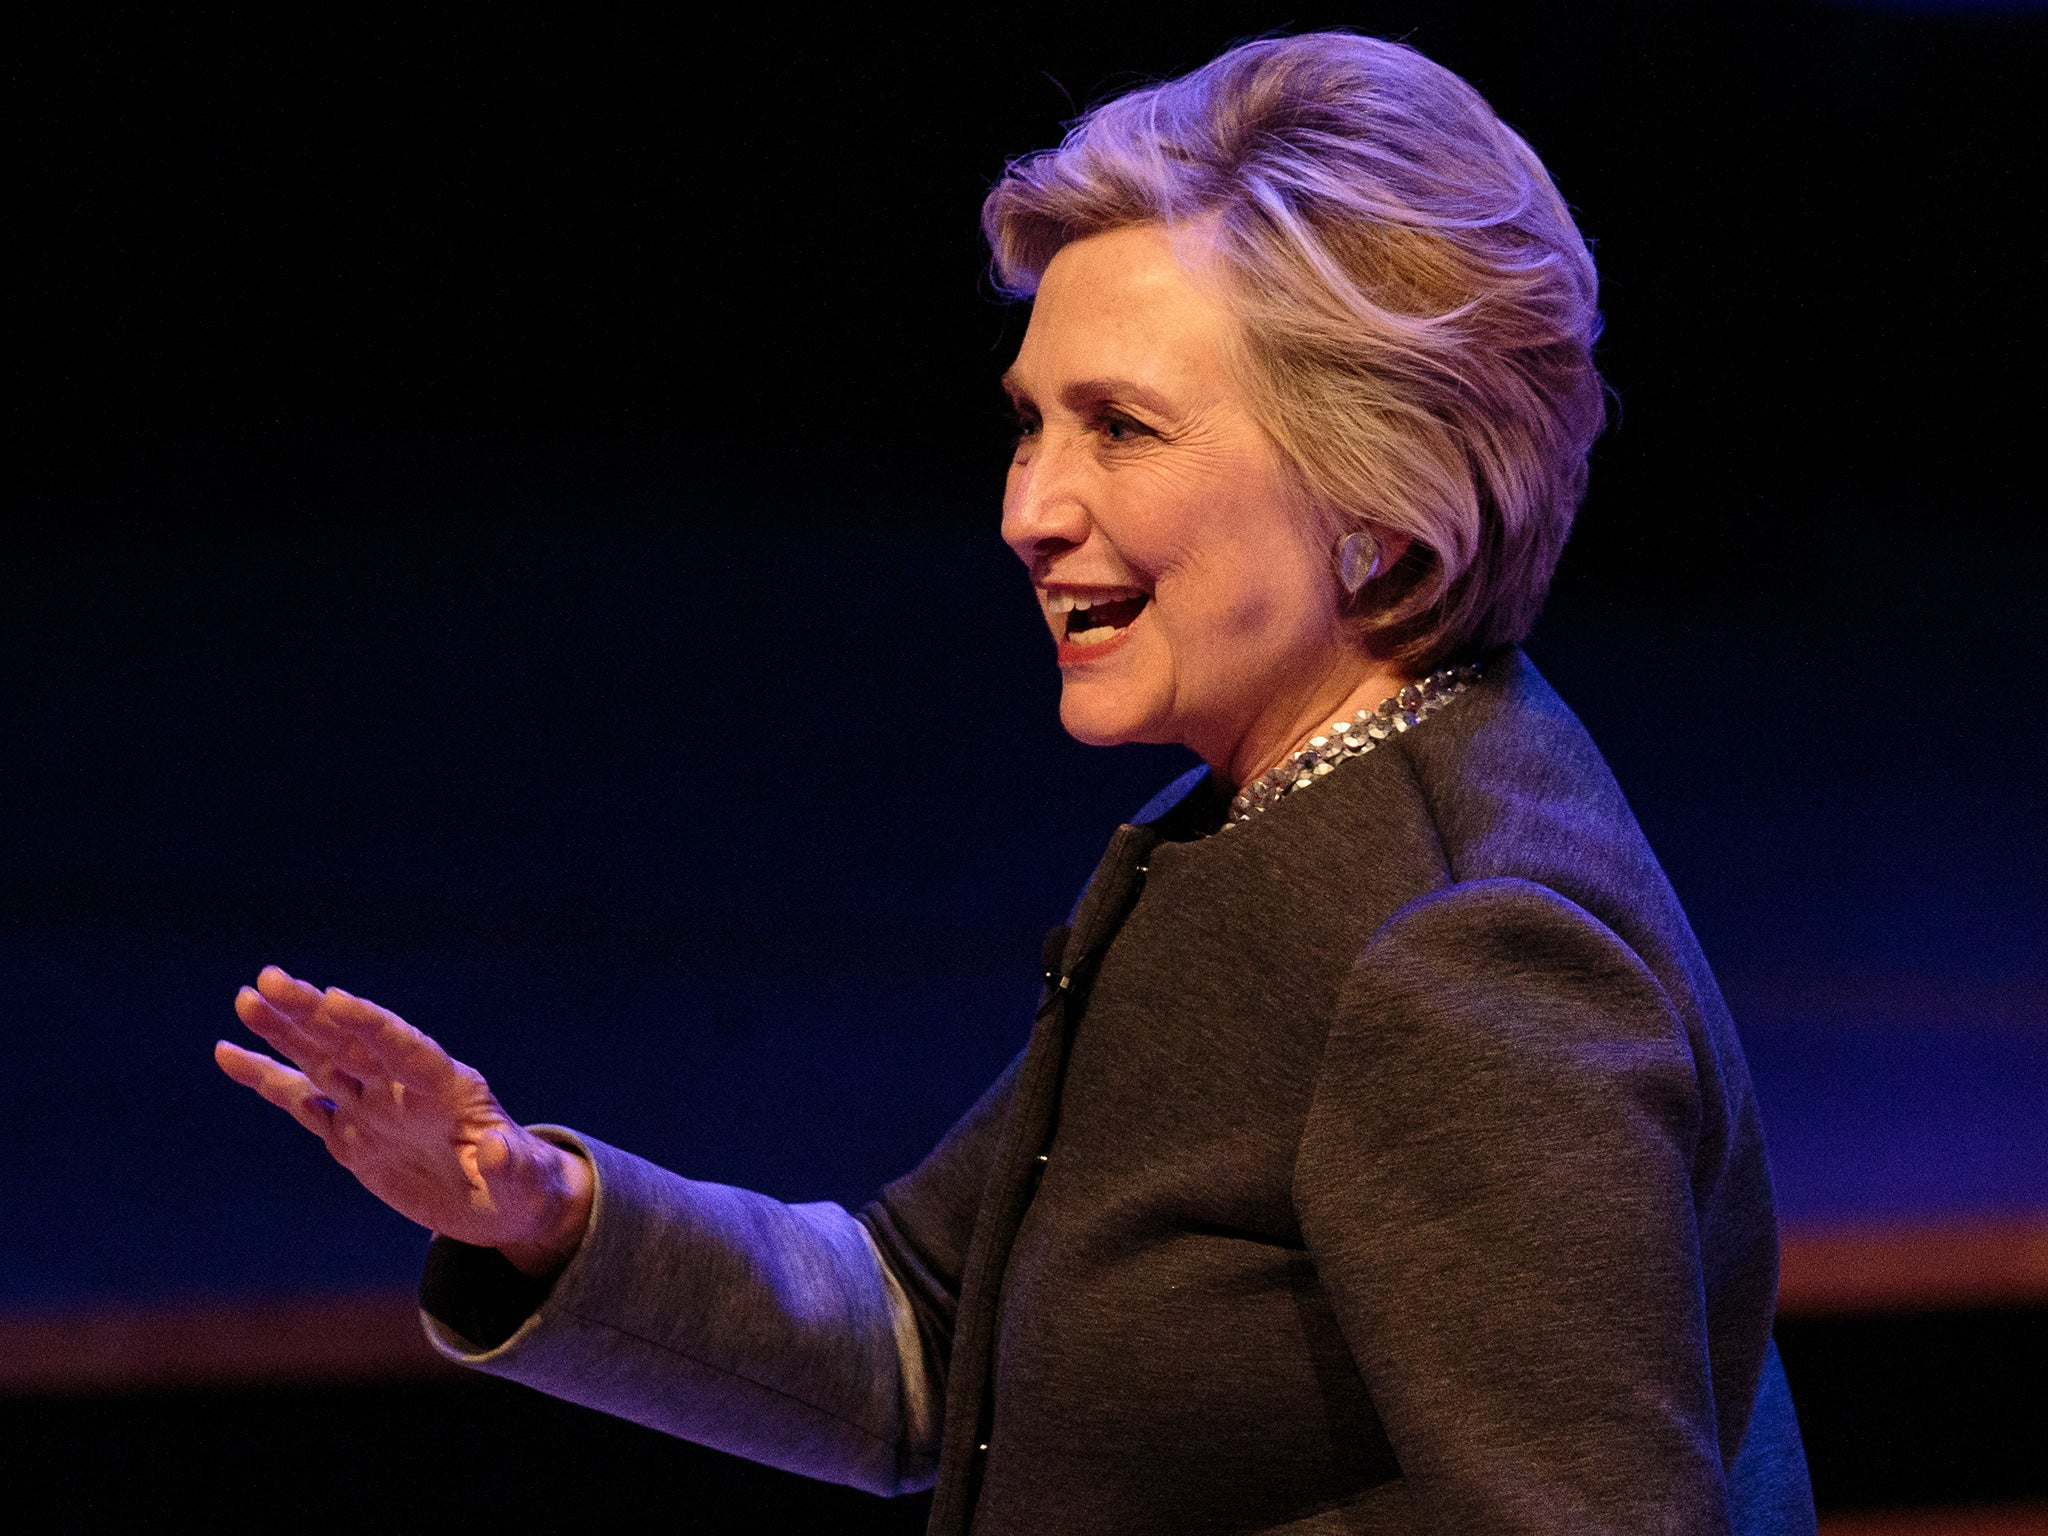 Last night, I saw Hillary Clinton – every young woman I ...